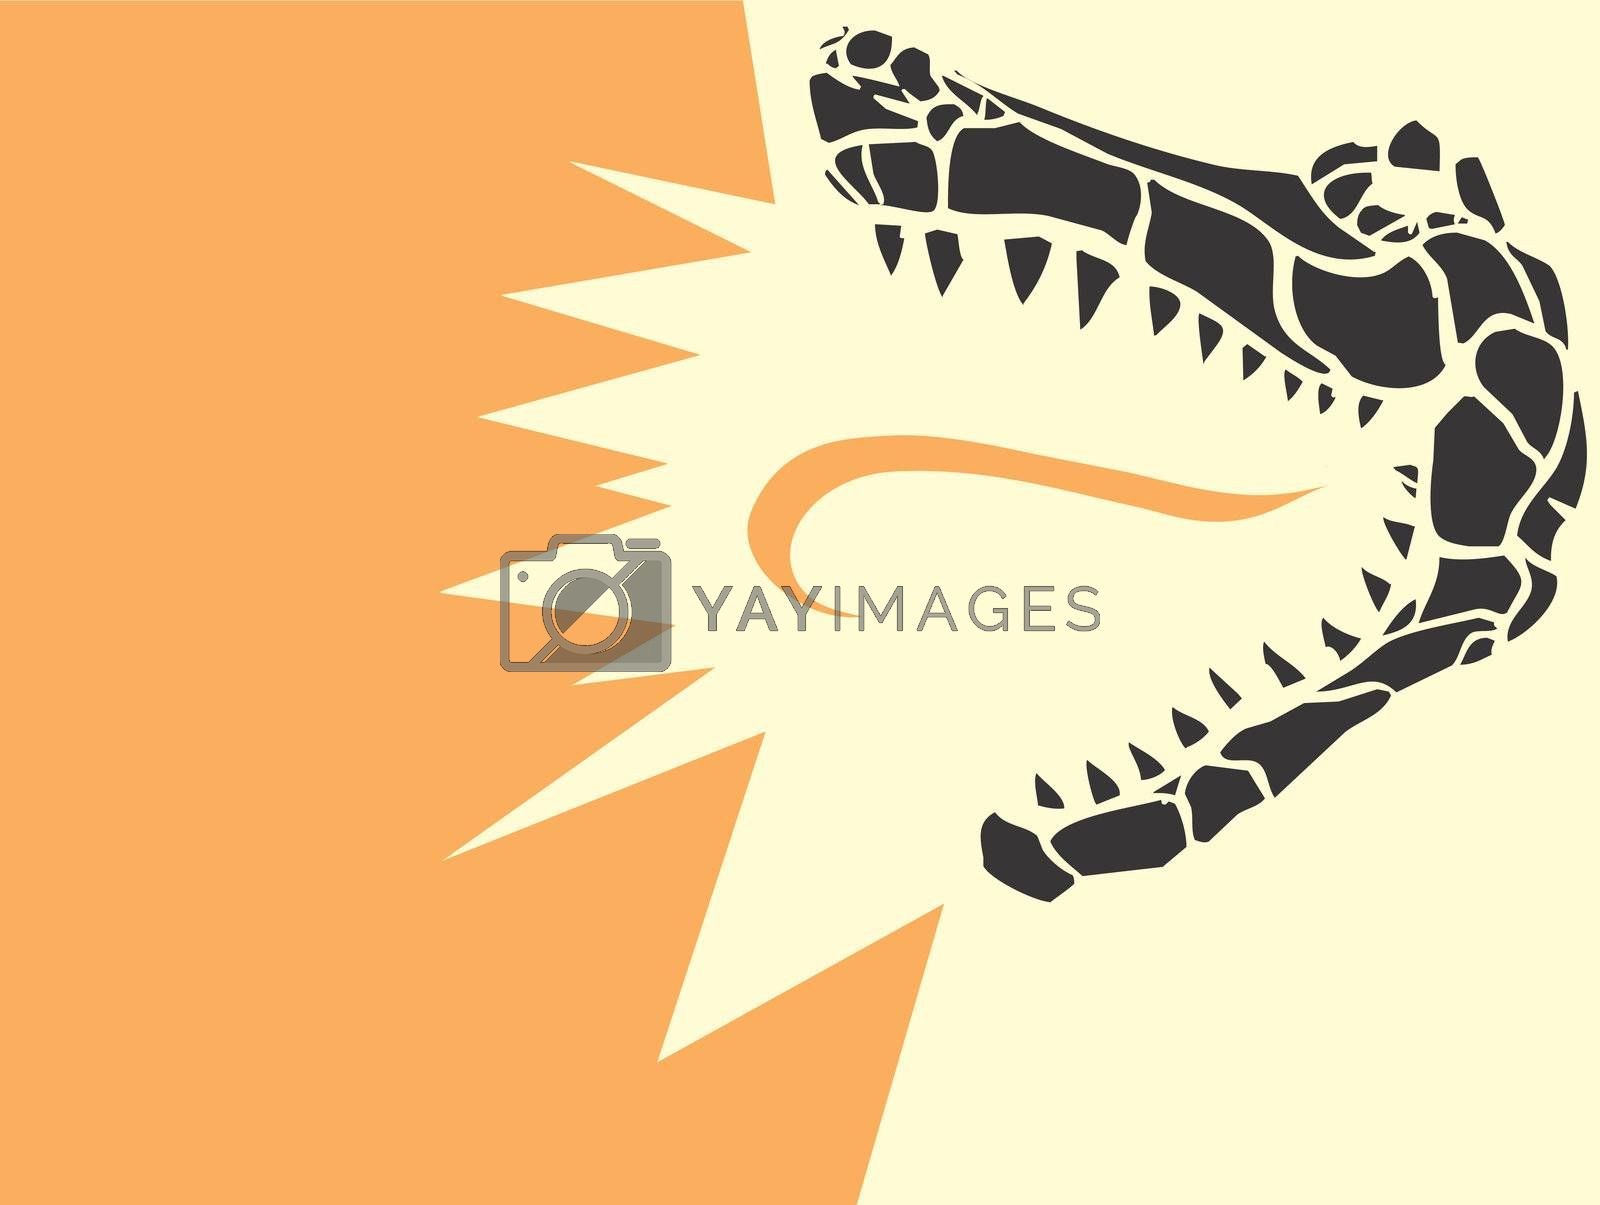 Simple image of an stylized alligator head derived from my own scratch board design with tongue of flame.